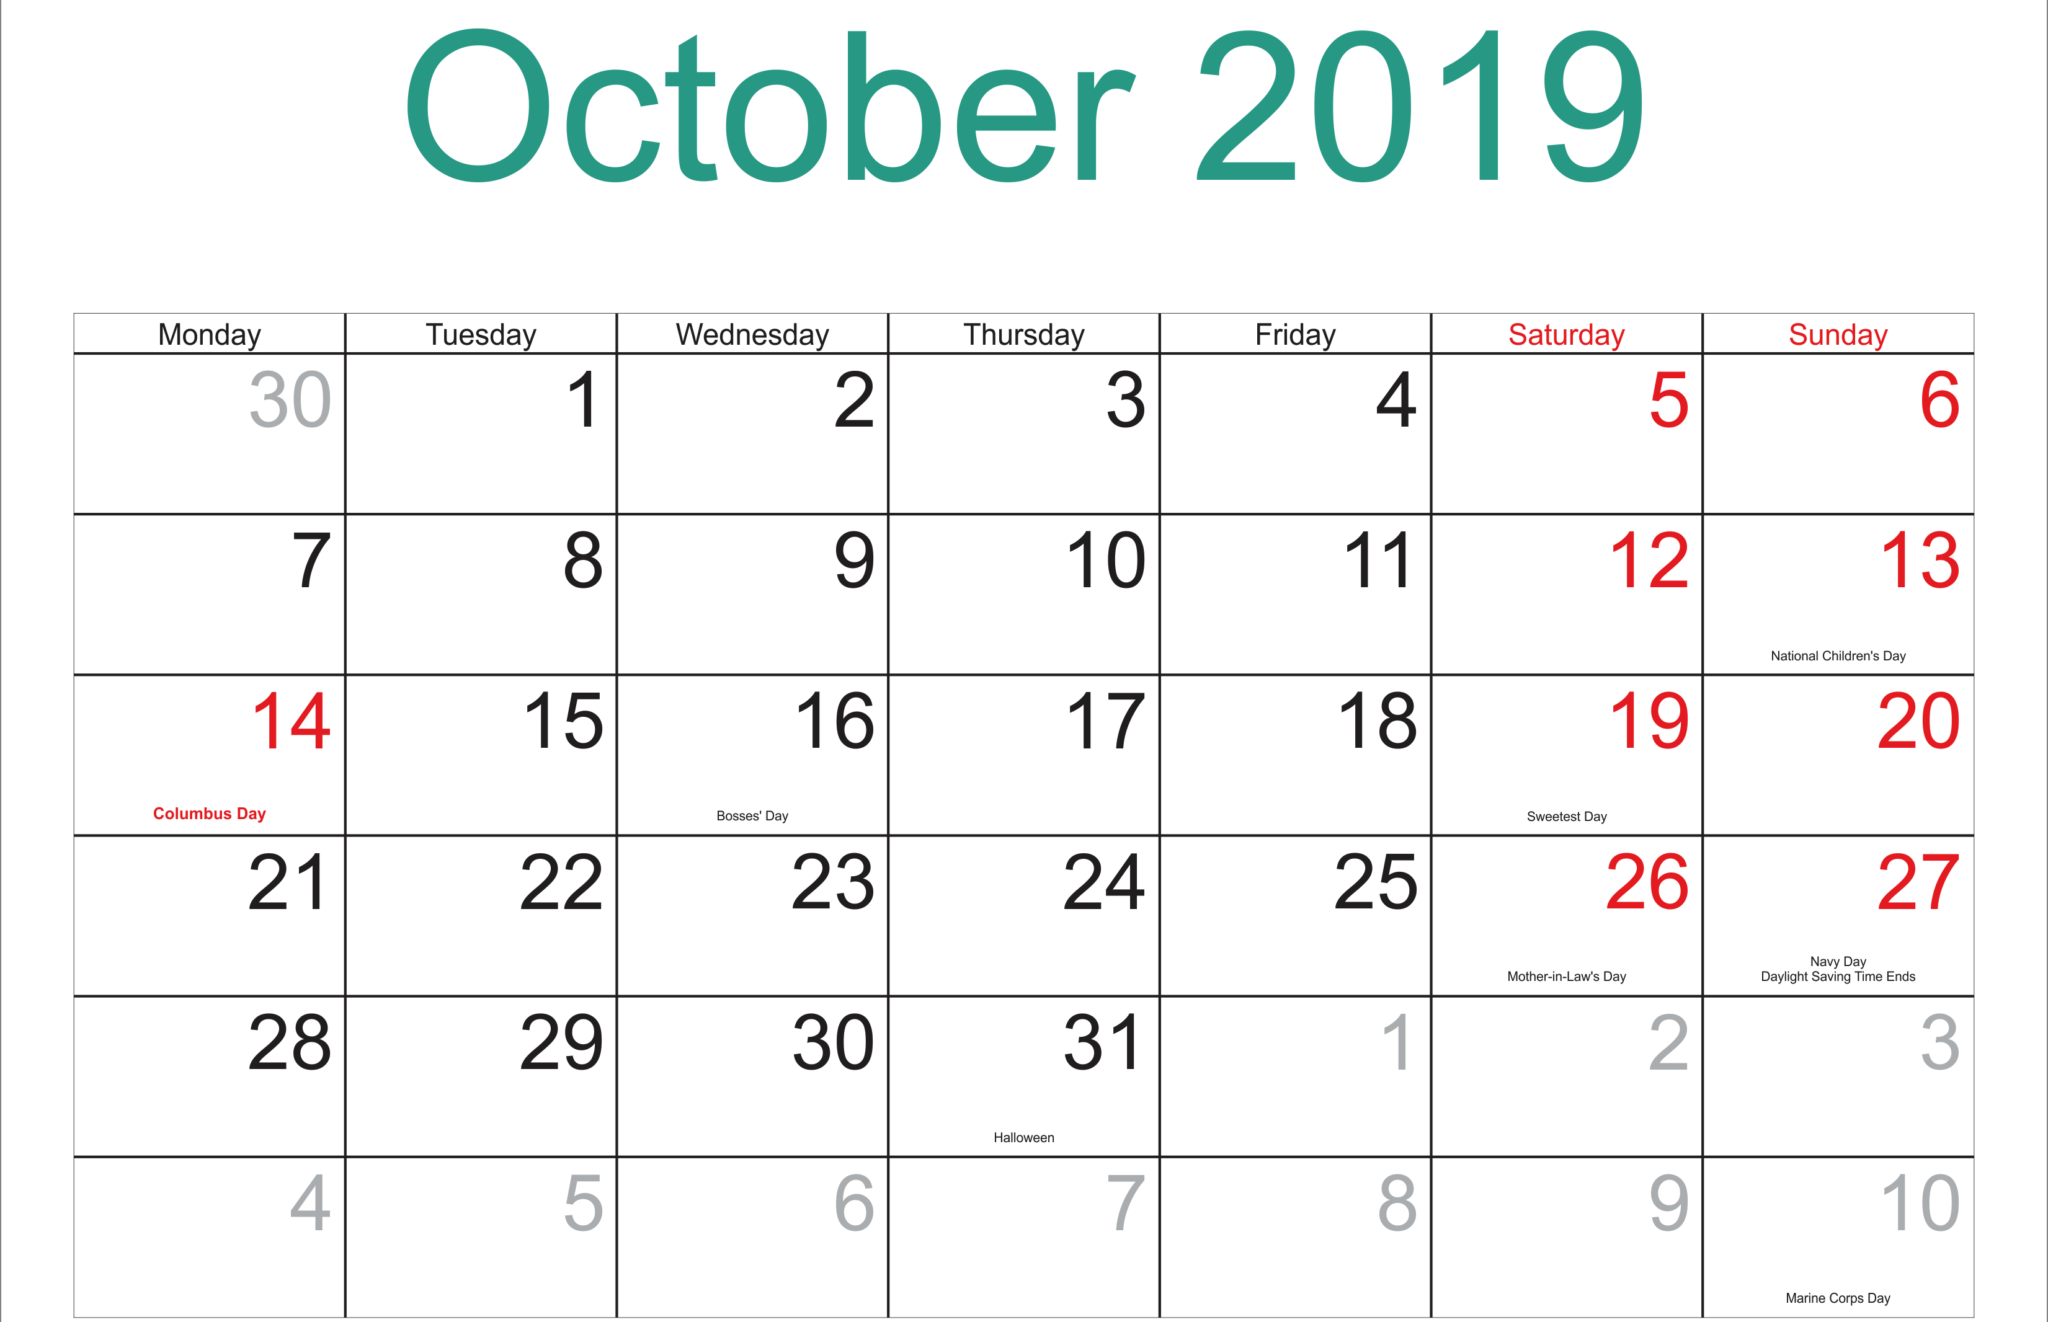 October 2019 Calendar with Holidays Printable with Notes